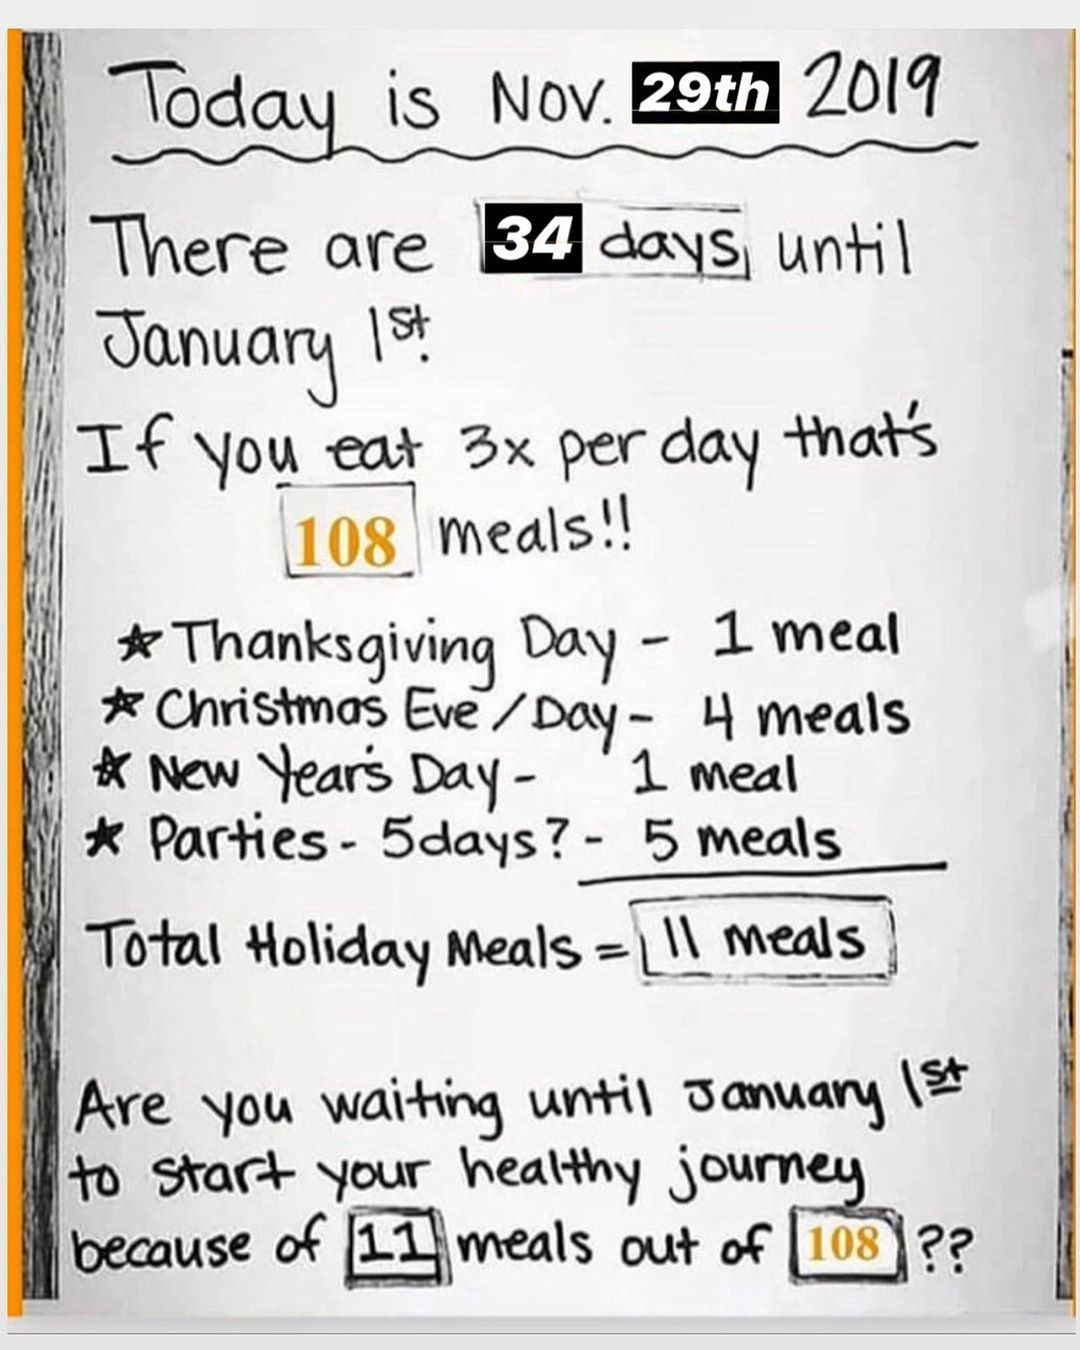 #fitnessmotivation #cleaneating #resolution #eatclean #fitness #fitfam #bhfyp #start #years #until #...